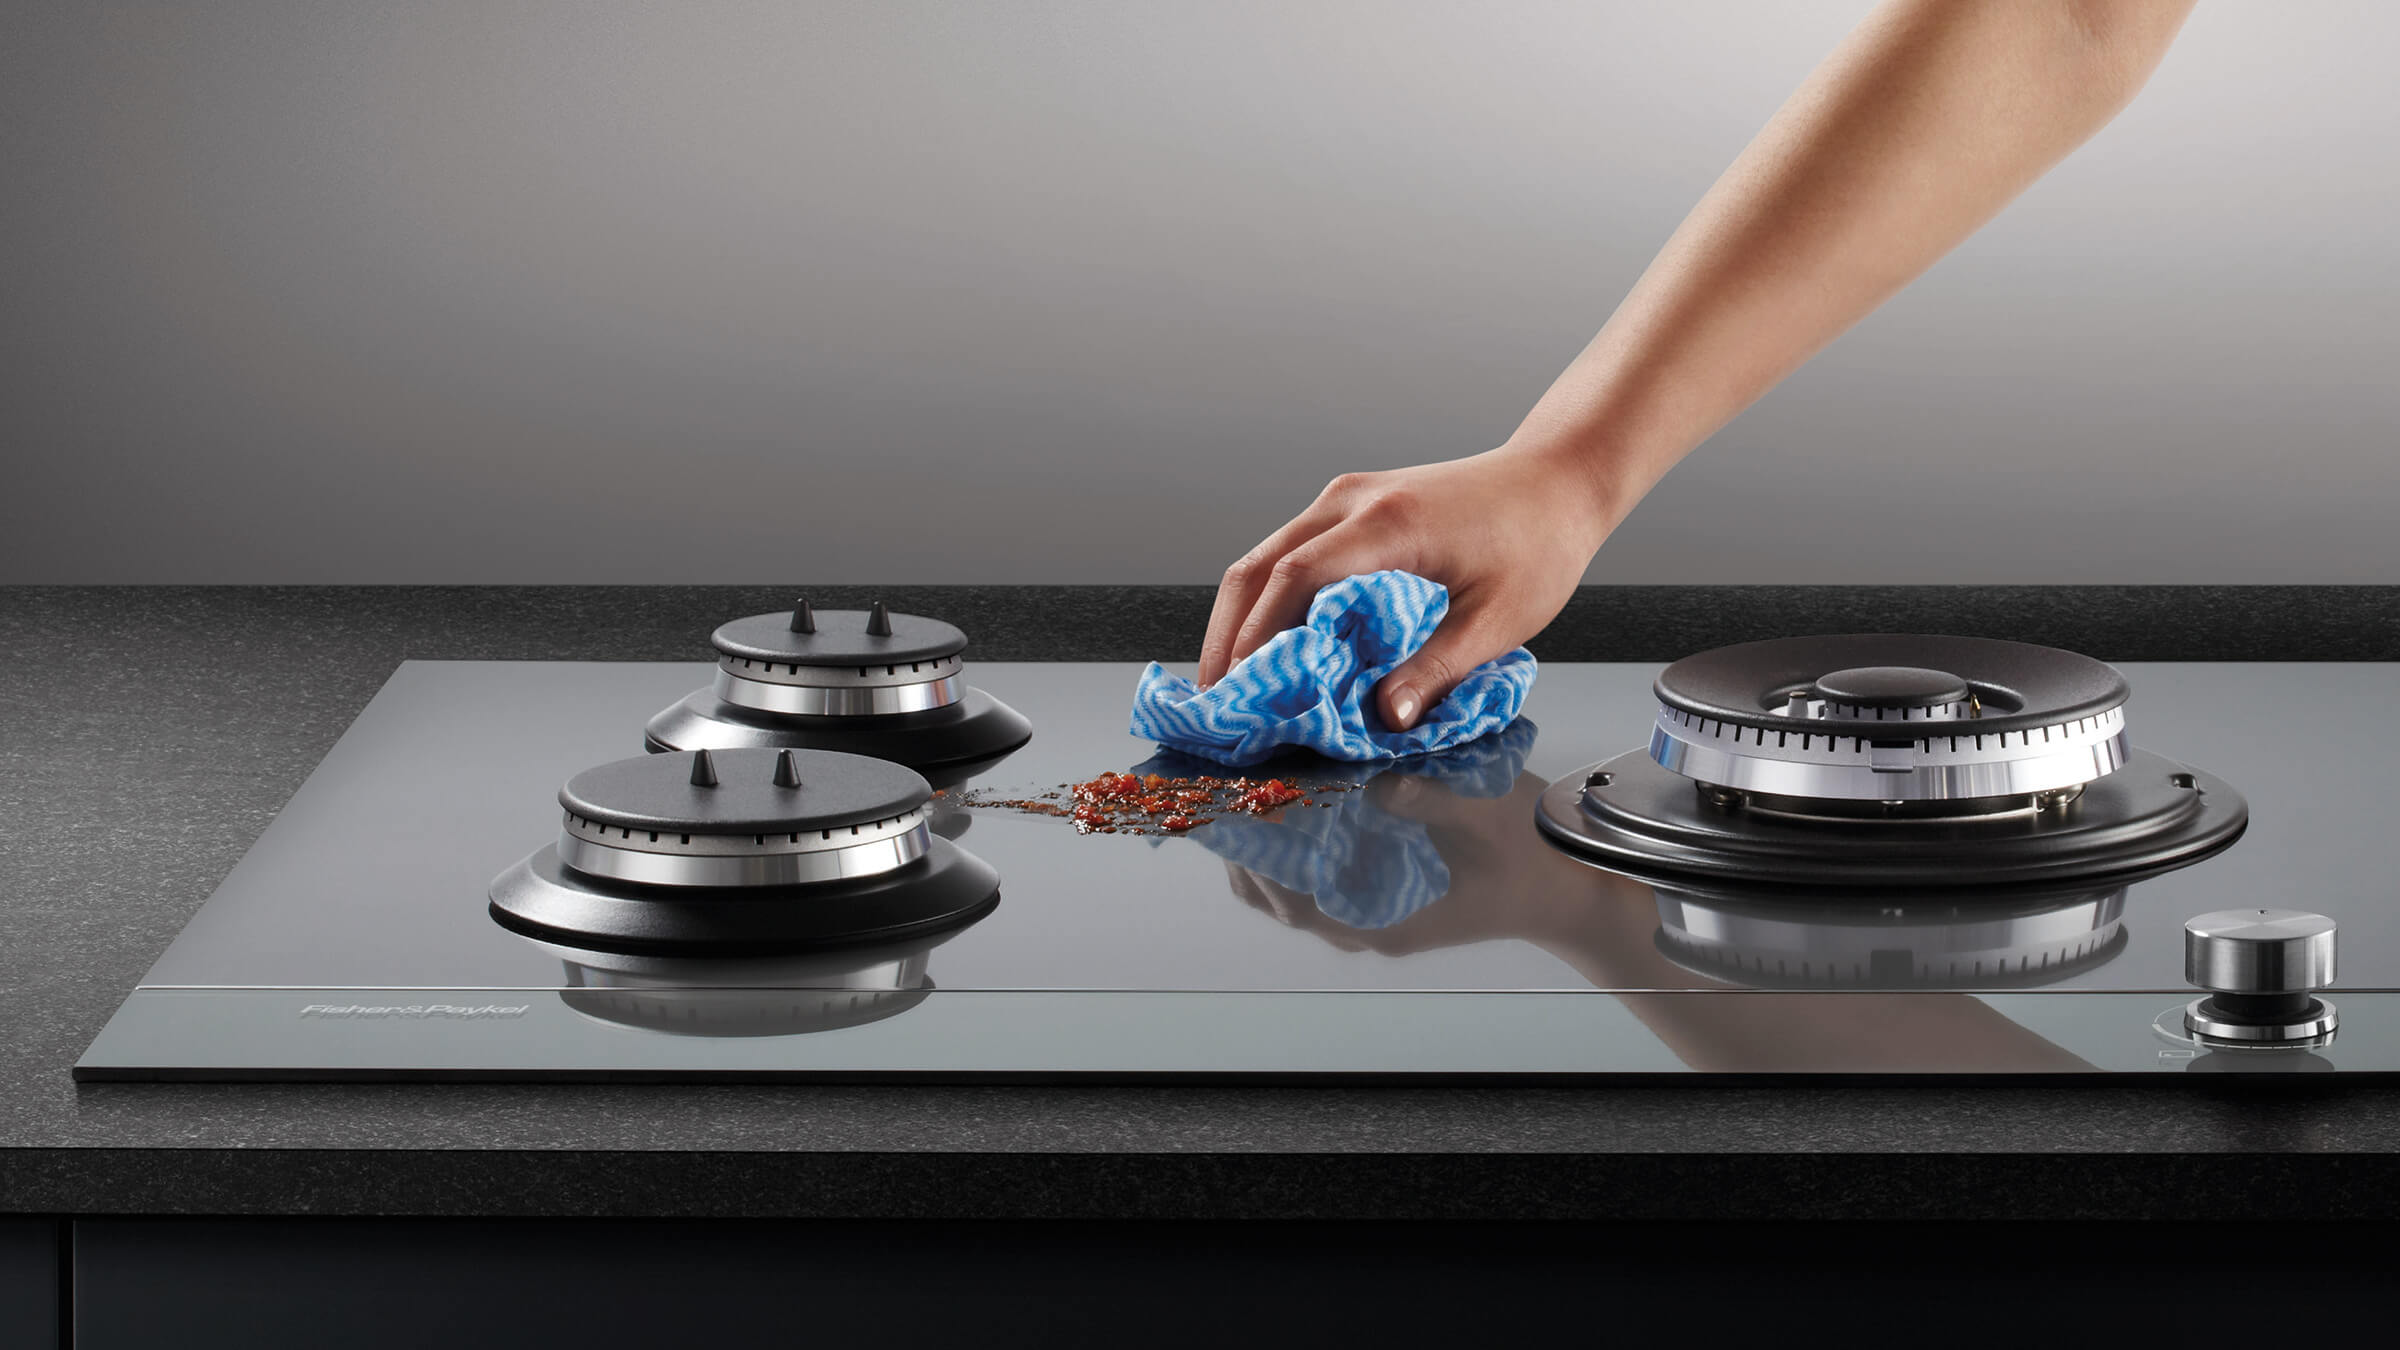 How To Clean A Gas Stove Step By Nothing Creative